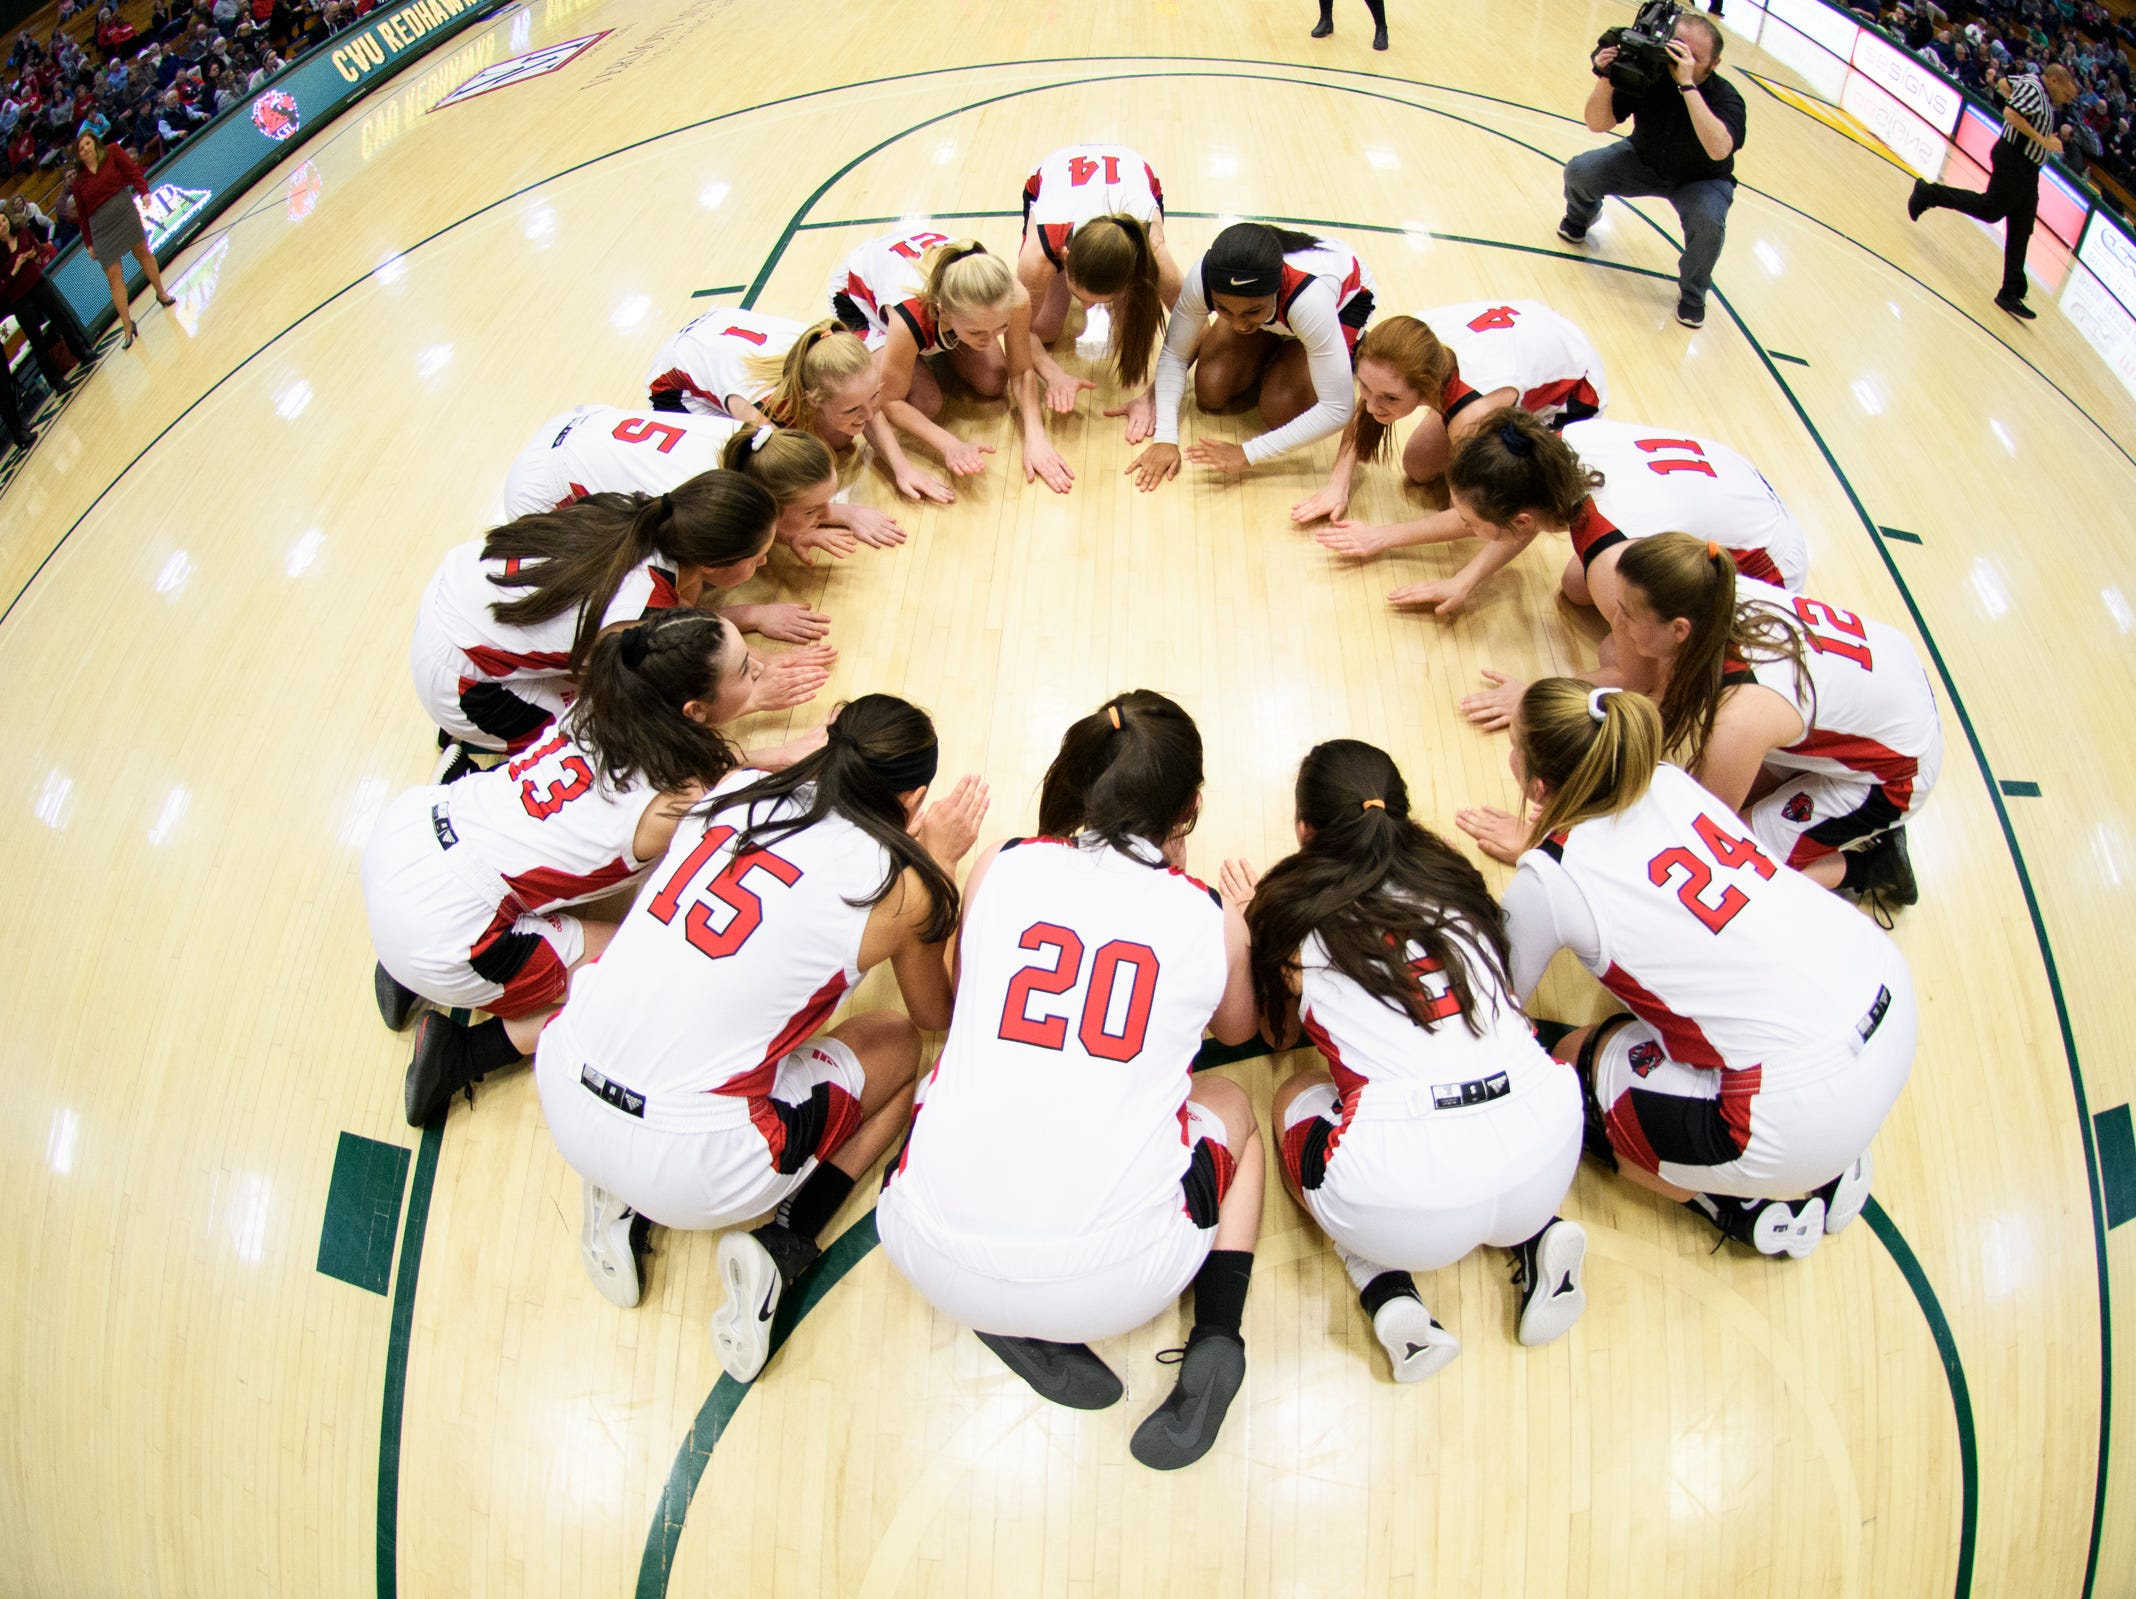 CVU huddles together during the girls semifinal basketball game between the Rice Green Knights and the Champlain Valley Union Redhawks at Patrick Gym on Wednesday nigh March 6, 2019 in Burlington, Vermont.